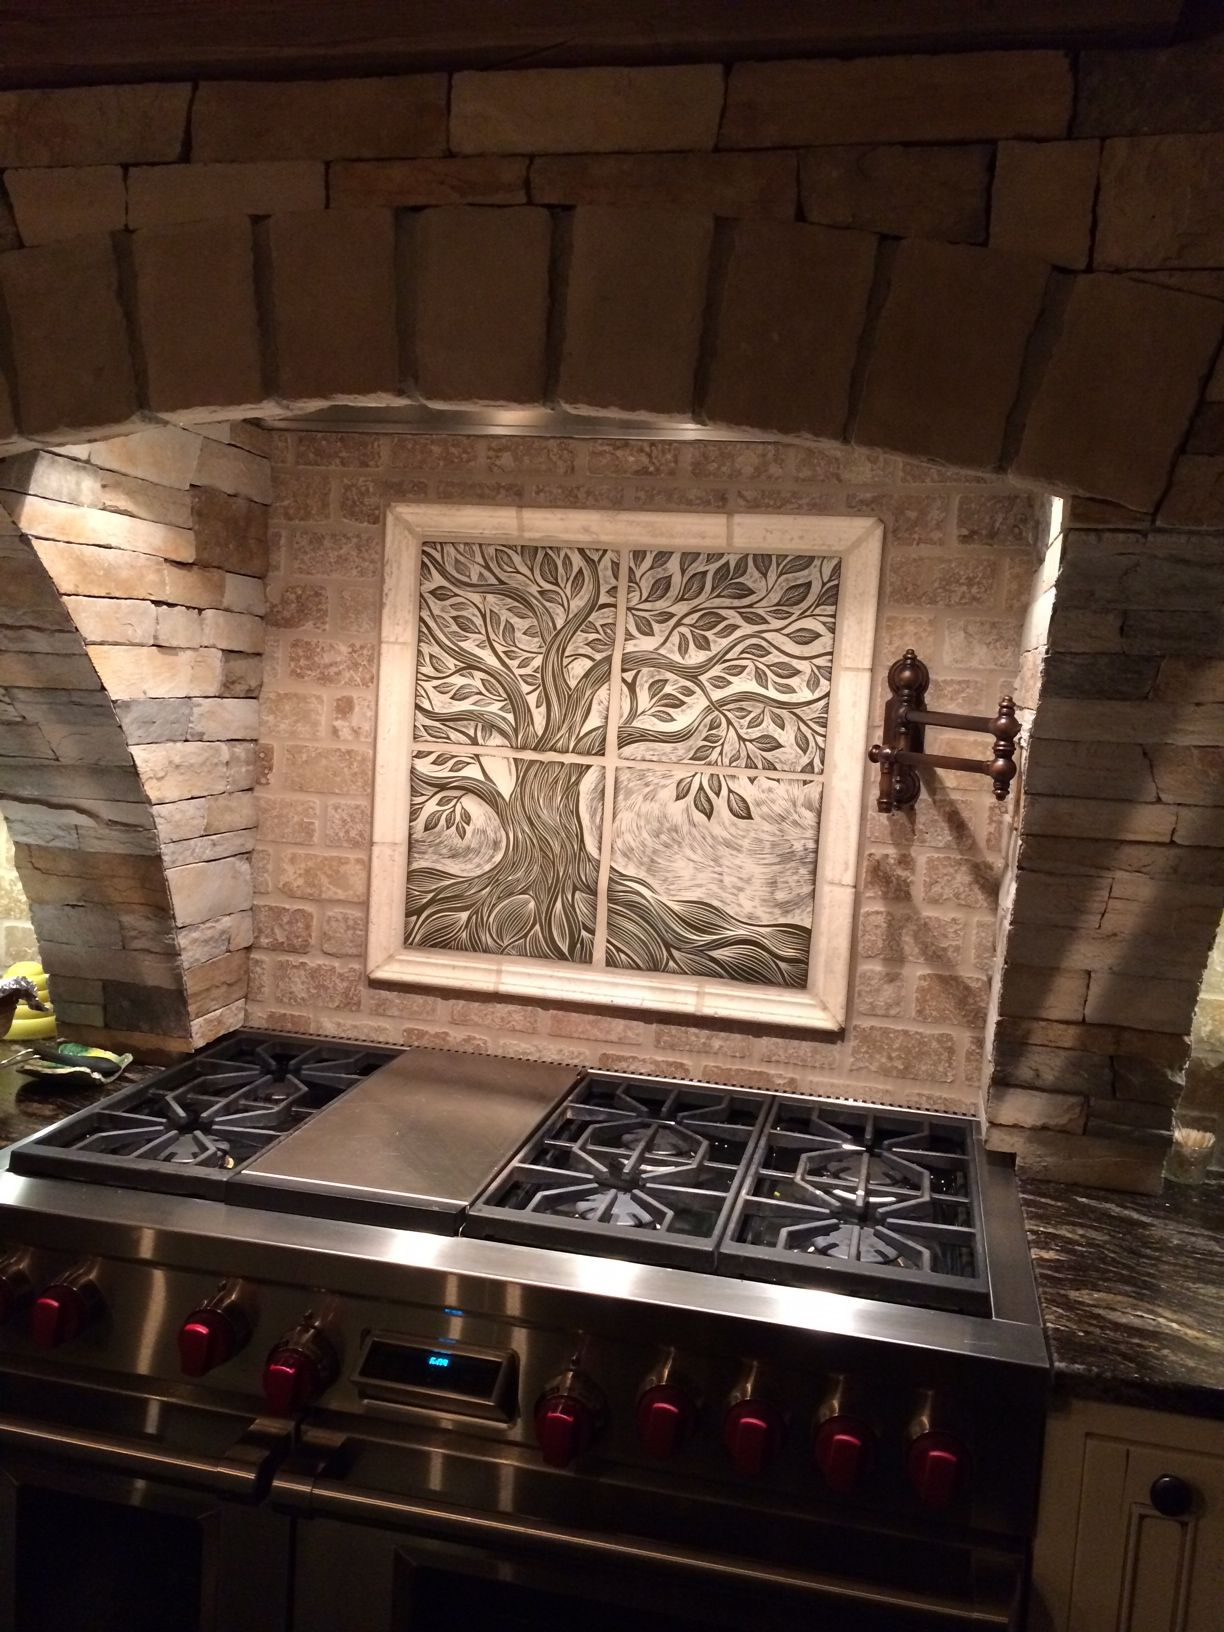 This is a custom 24 x 24 sculptural ceramic backsplash for Custom tile mural